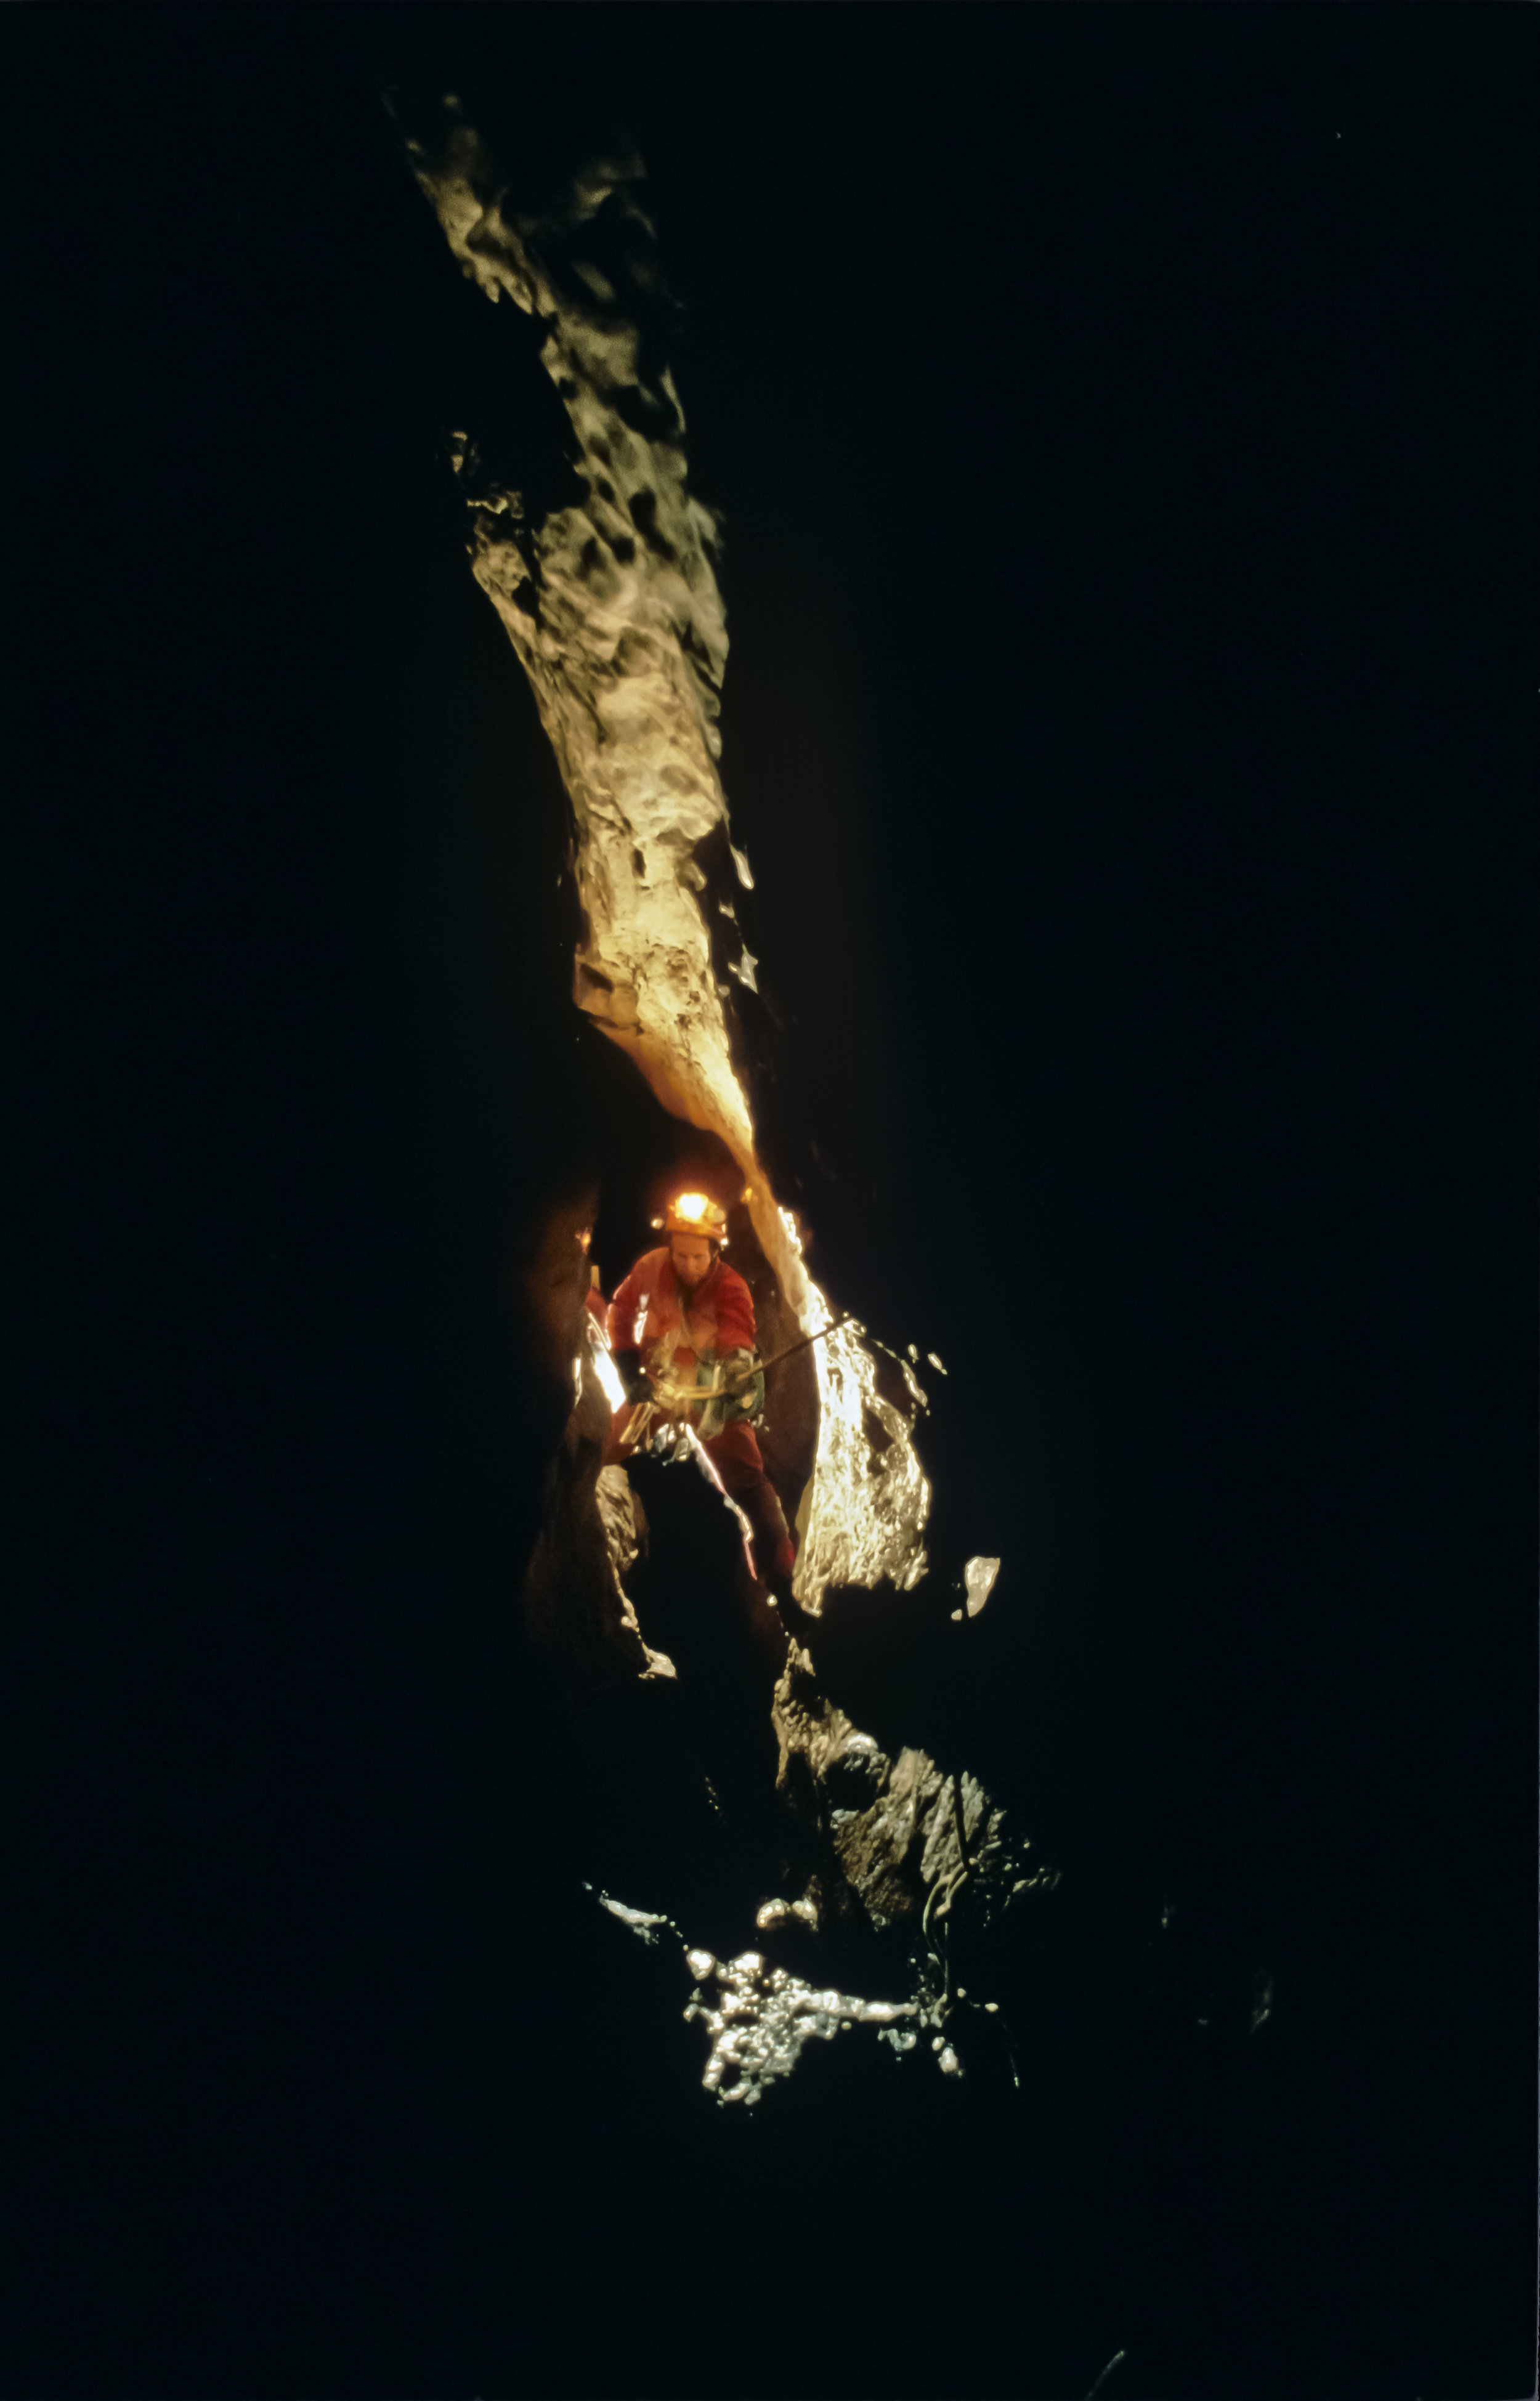 """Edging out over the abyss, Steve Porter begins a descent of """"The 100m Shaft"""", first in a series of deep pitches which descend more than 300m with very little horizontal offset. Photo by U. S. Deep Caving Team/Wes Skiles."""